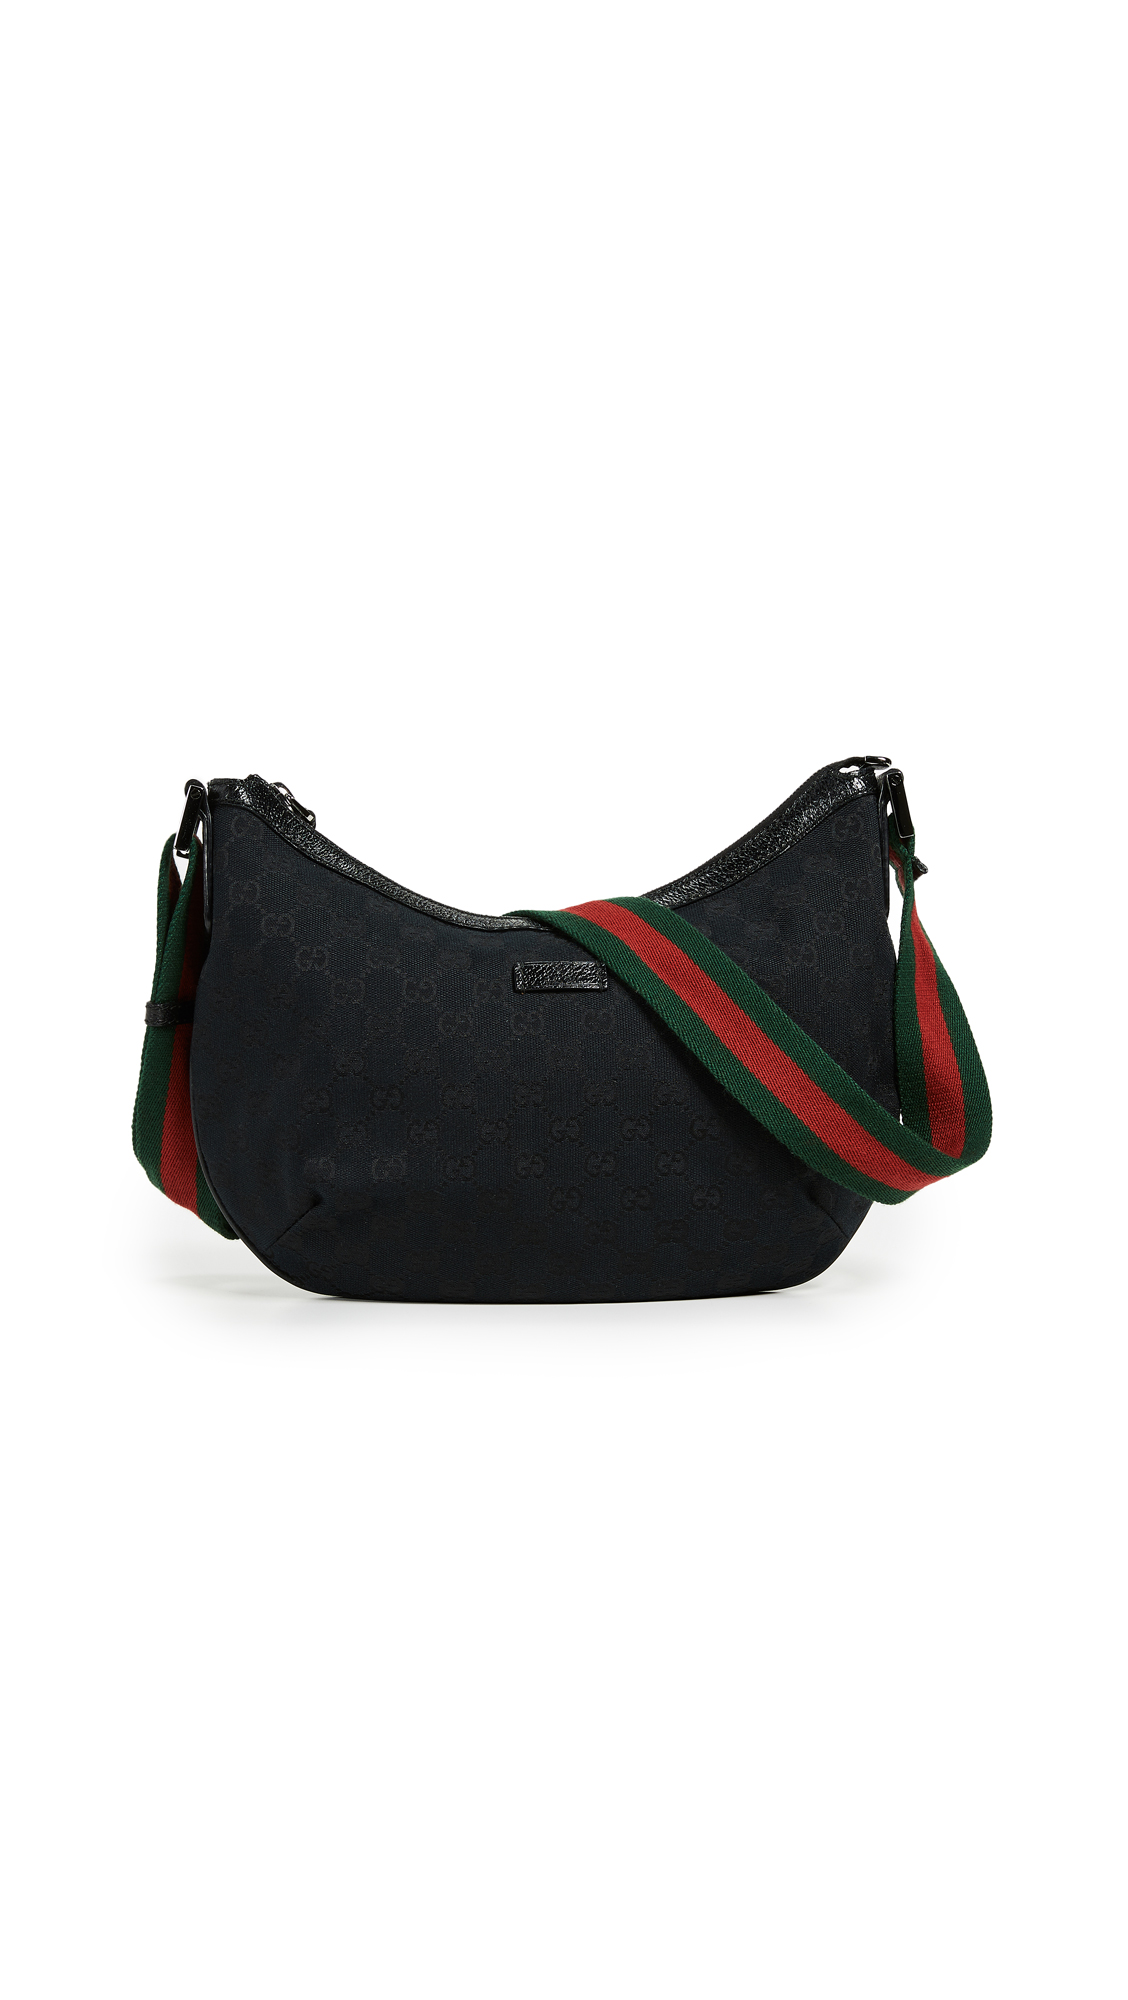 GUCCI CANVAS MESSENGER